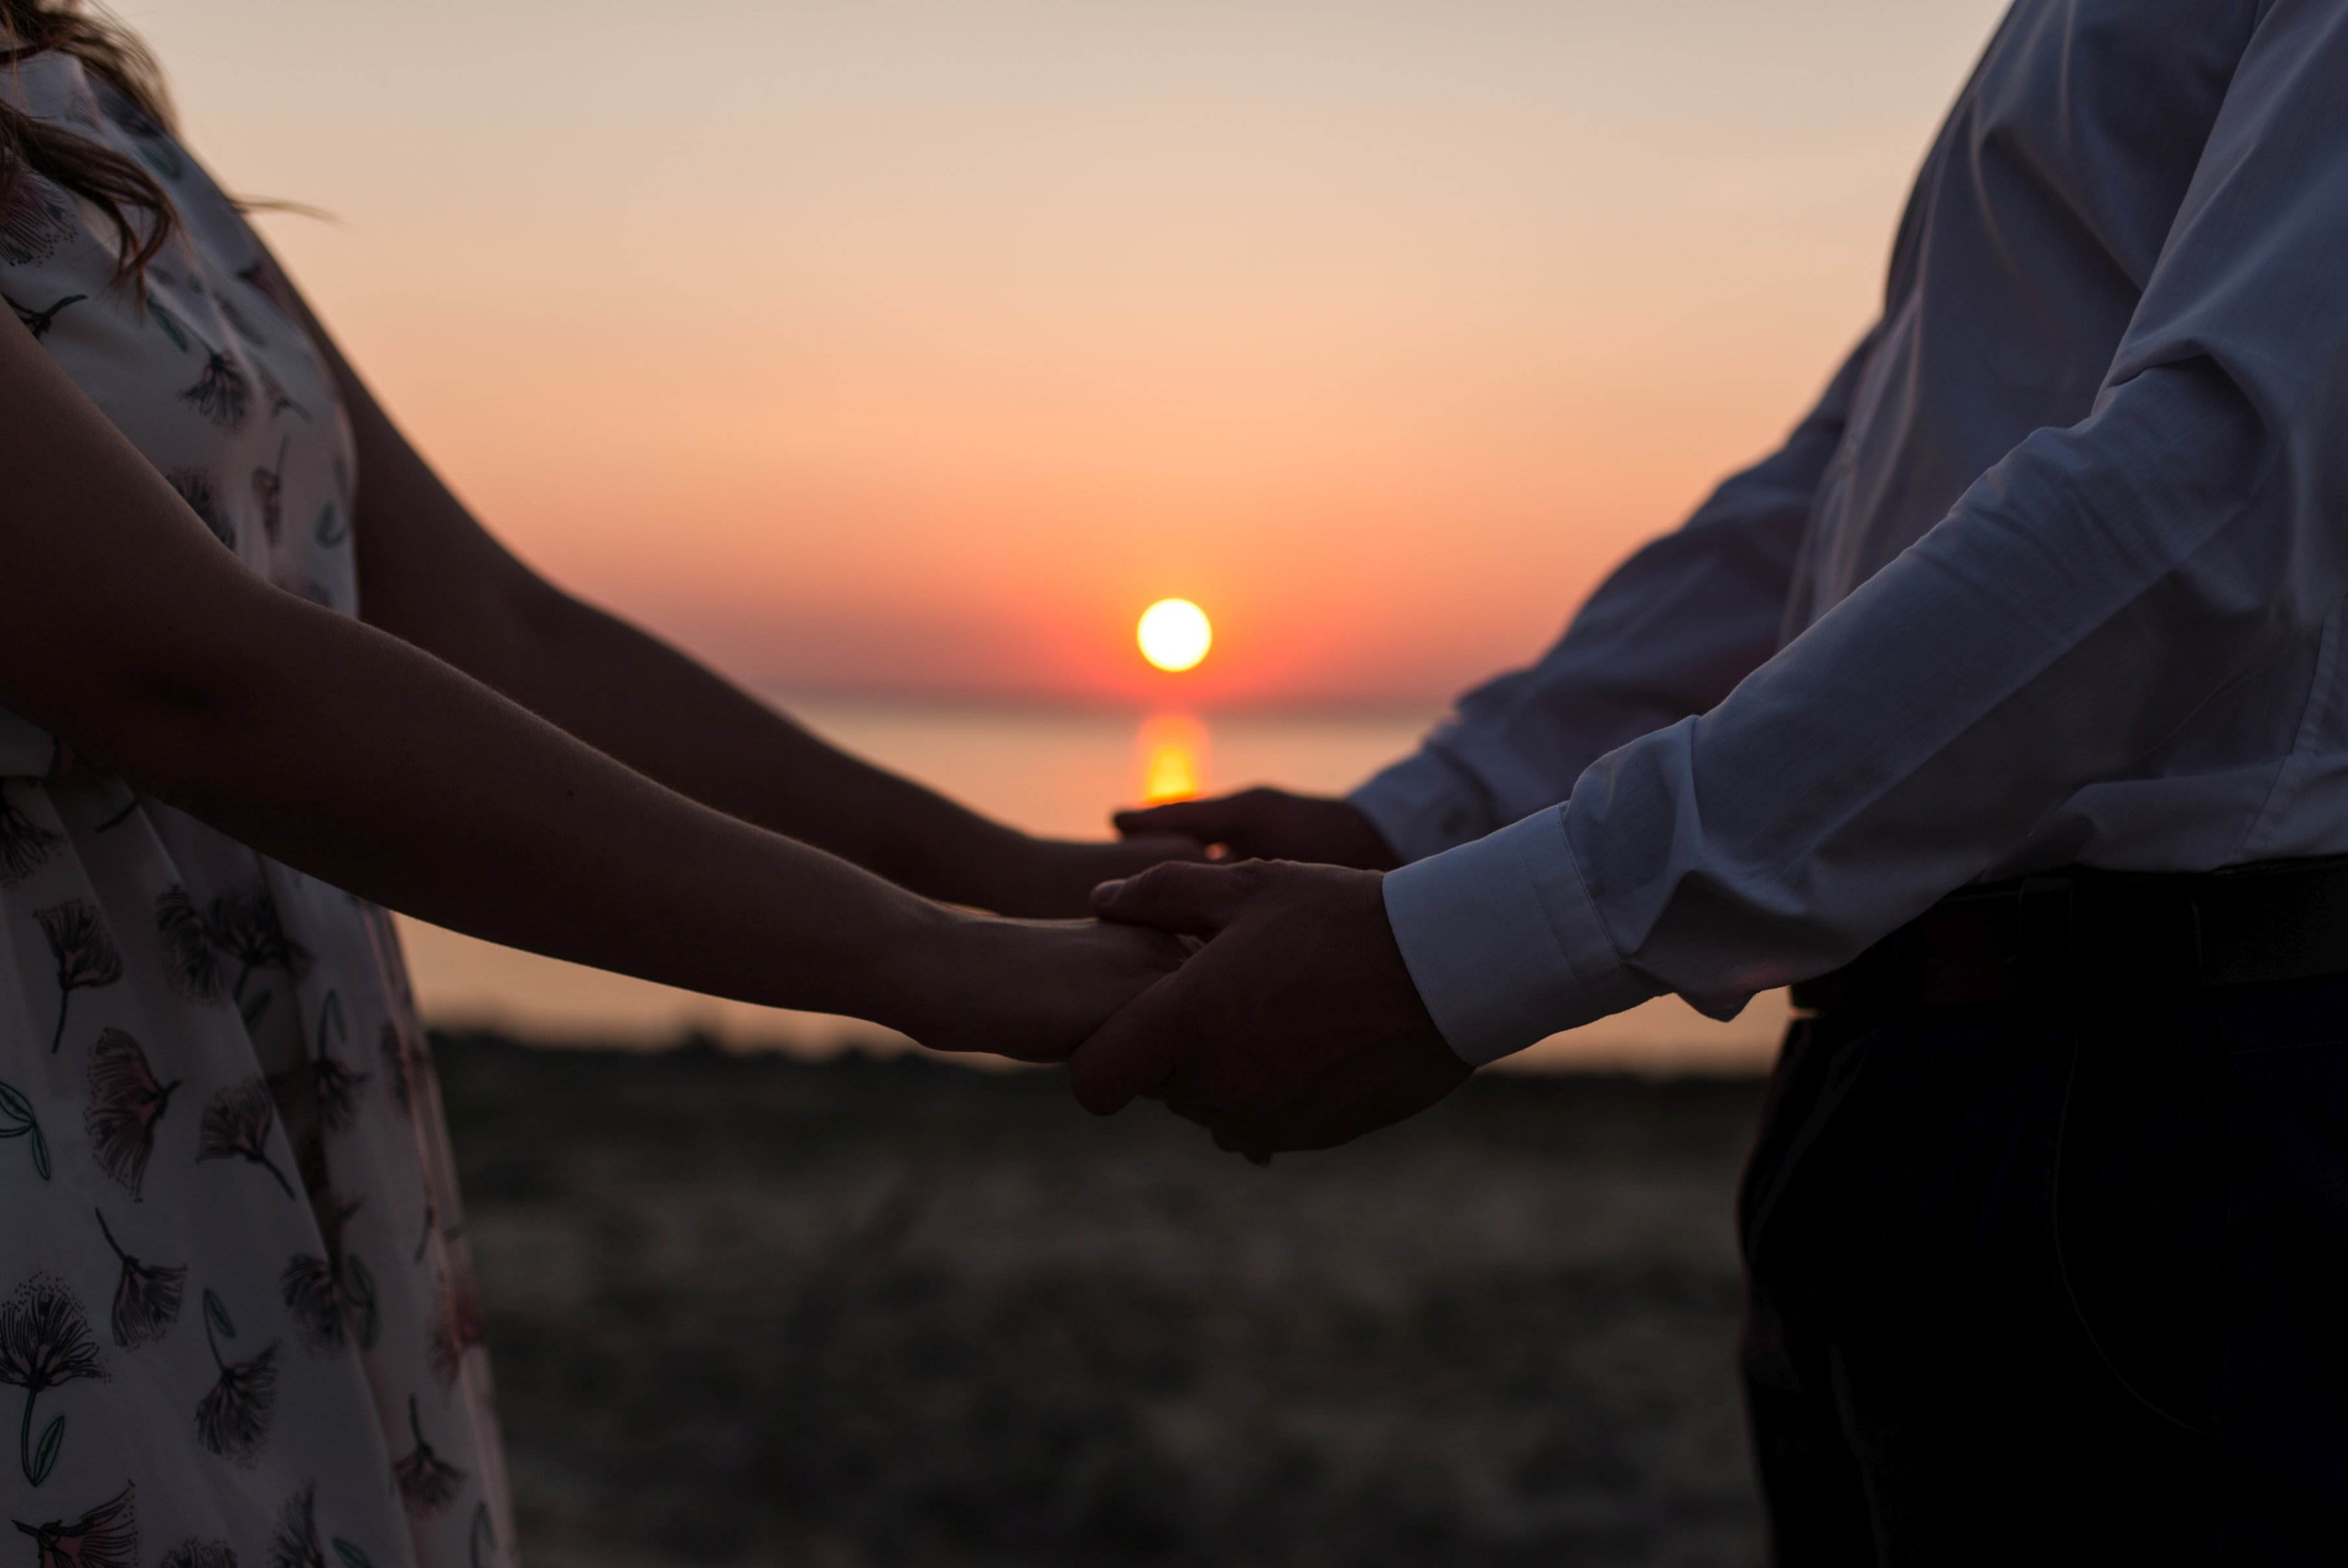 man and woman holding each others' hands